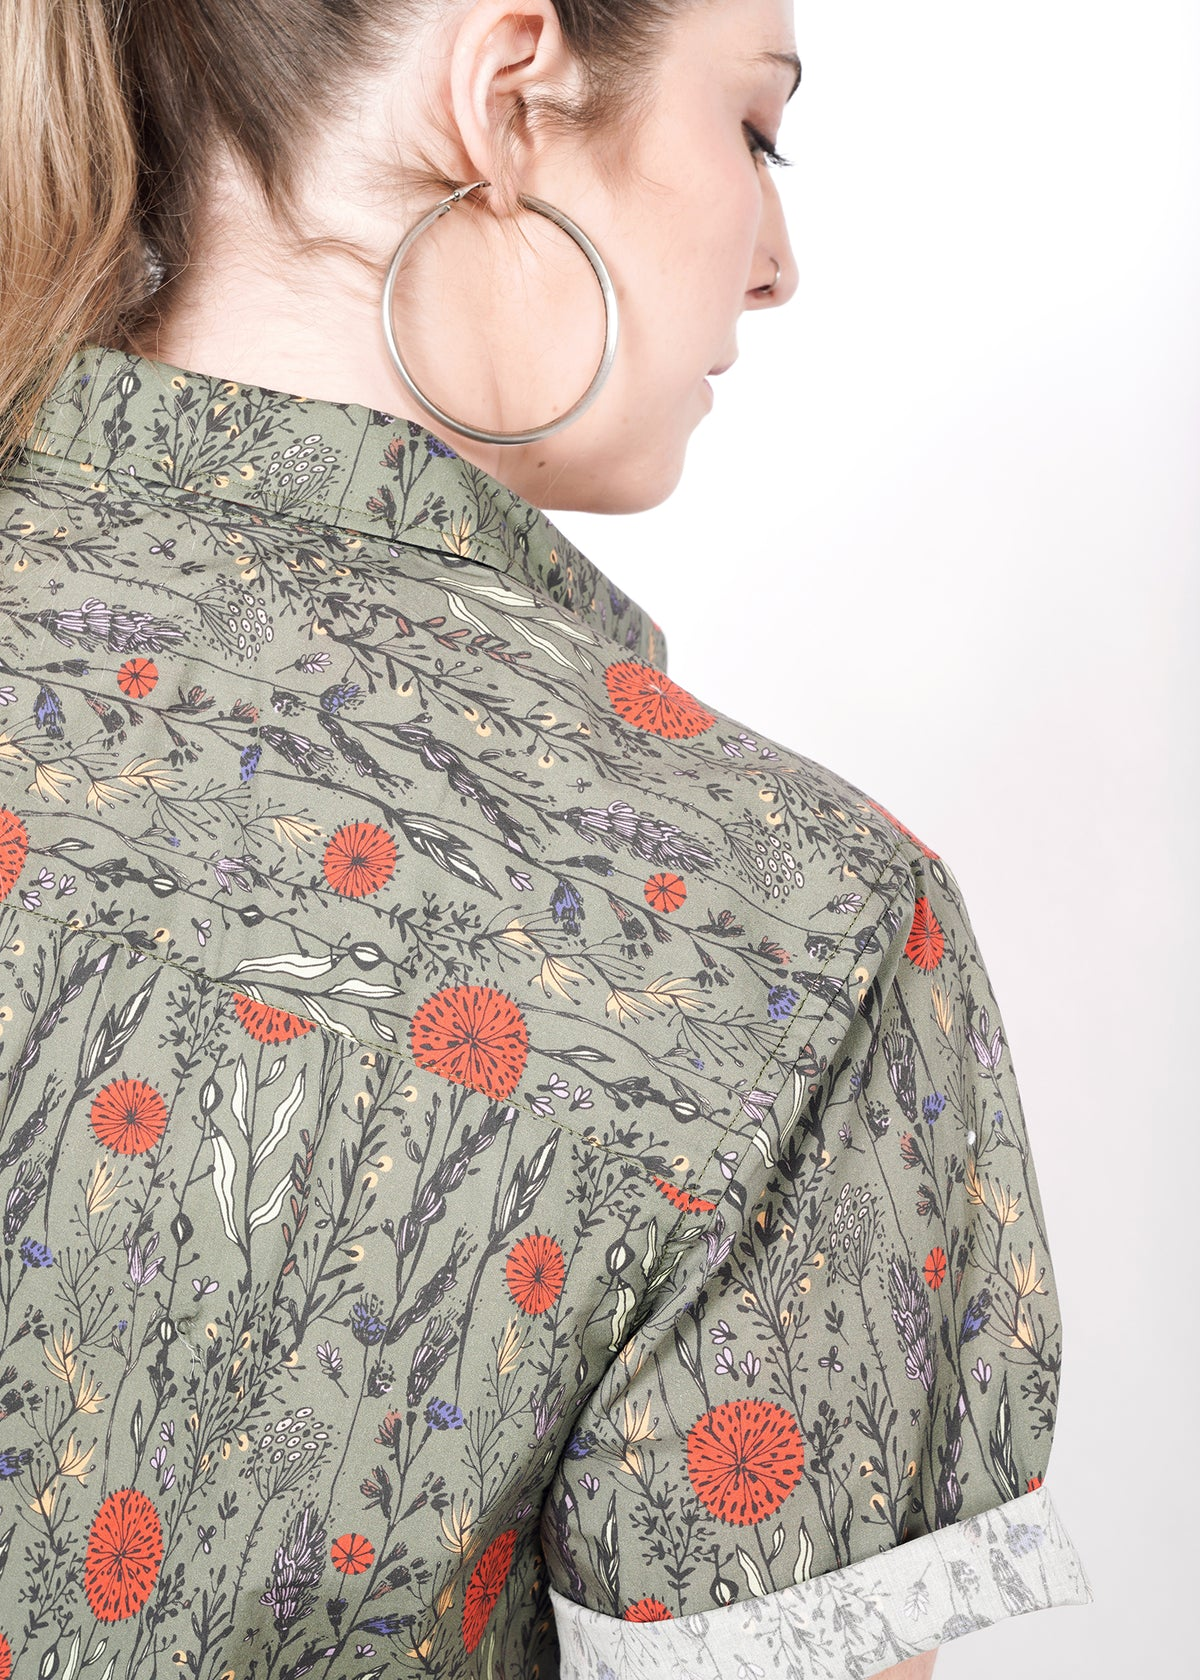 Detail of the pattern on the button up- a botanical print with red, yellow, and purple flowers and plants on light olive green background